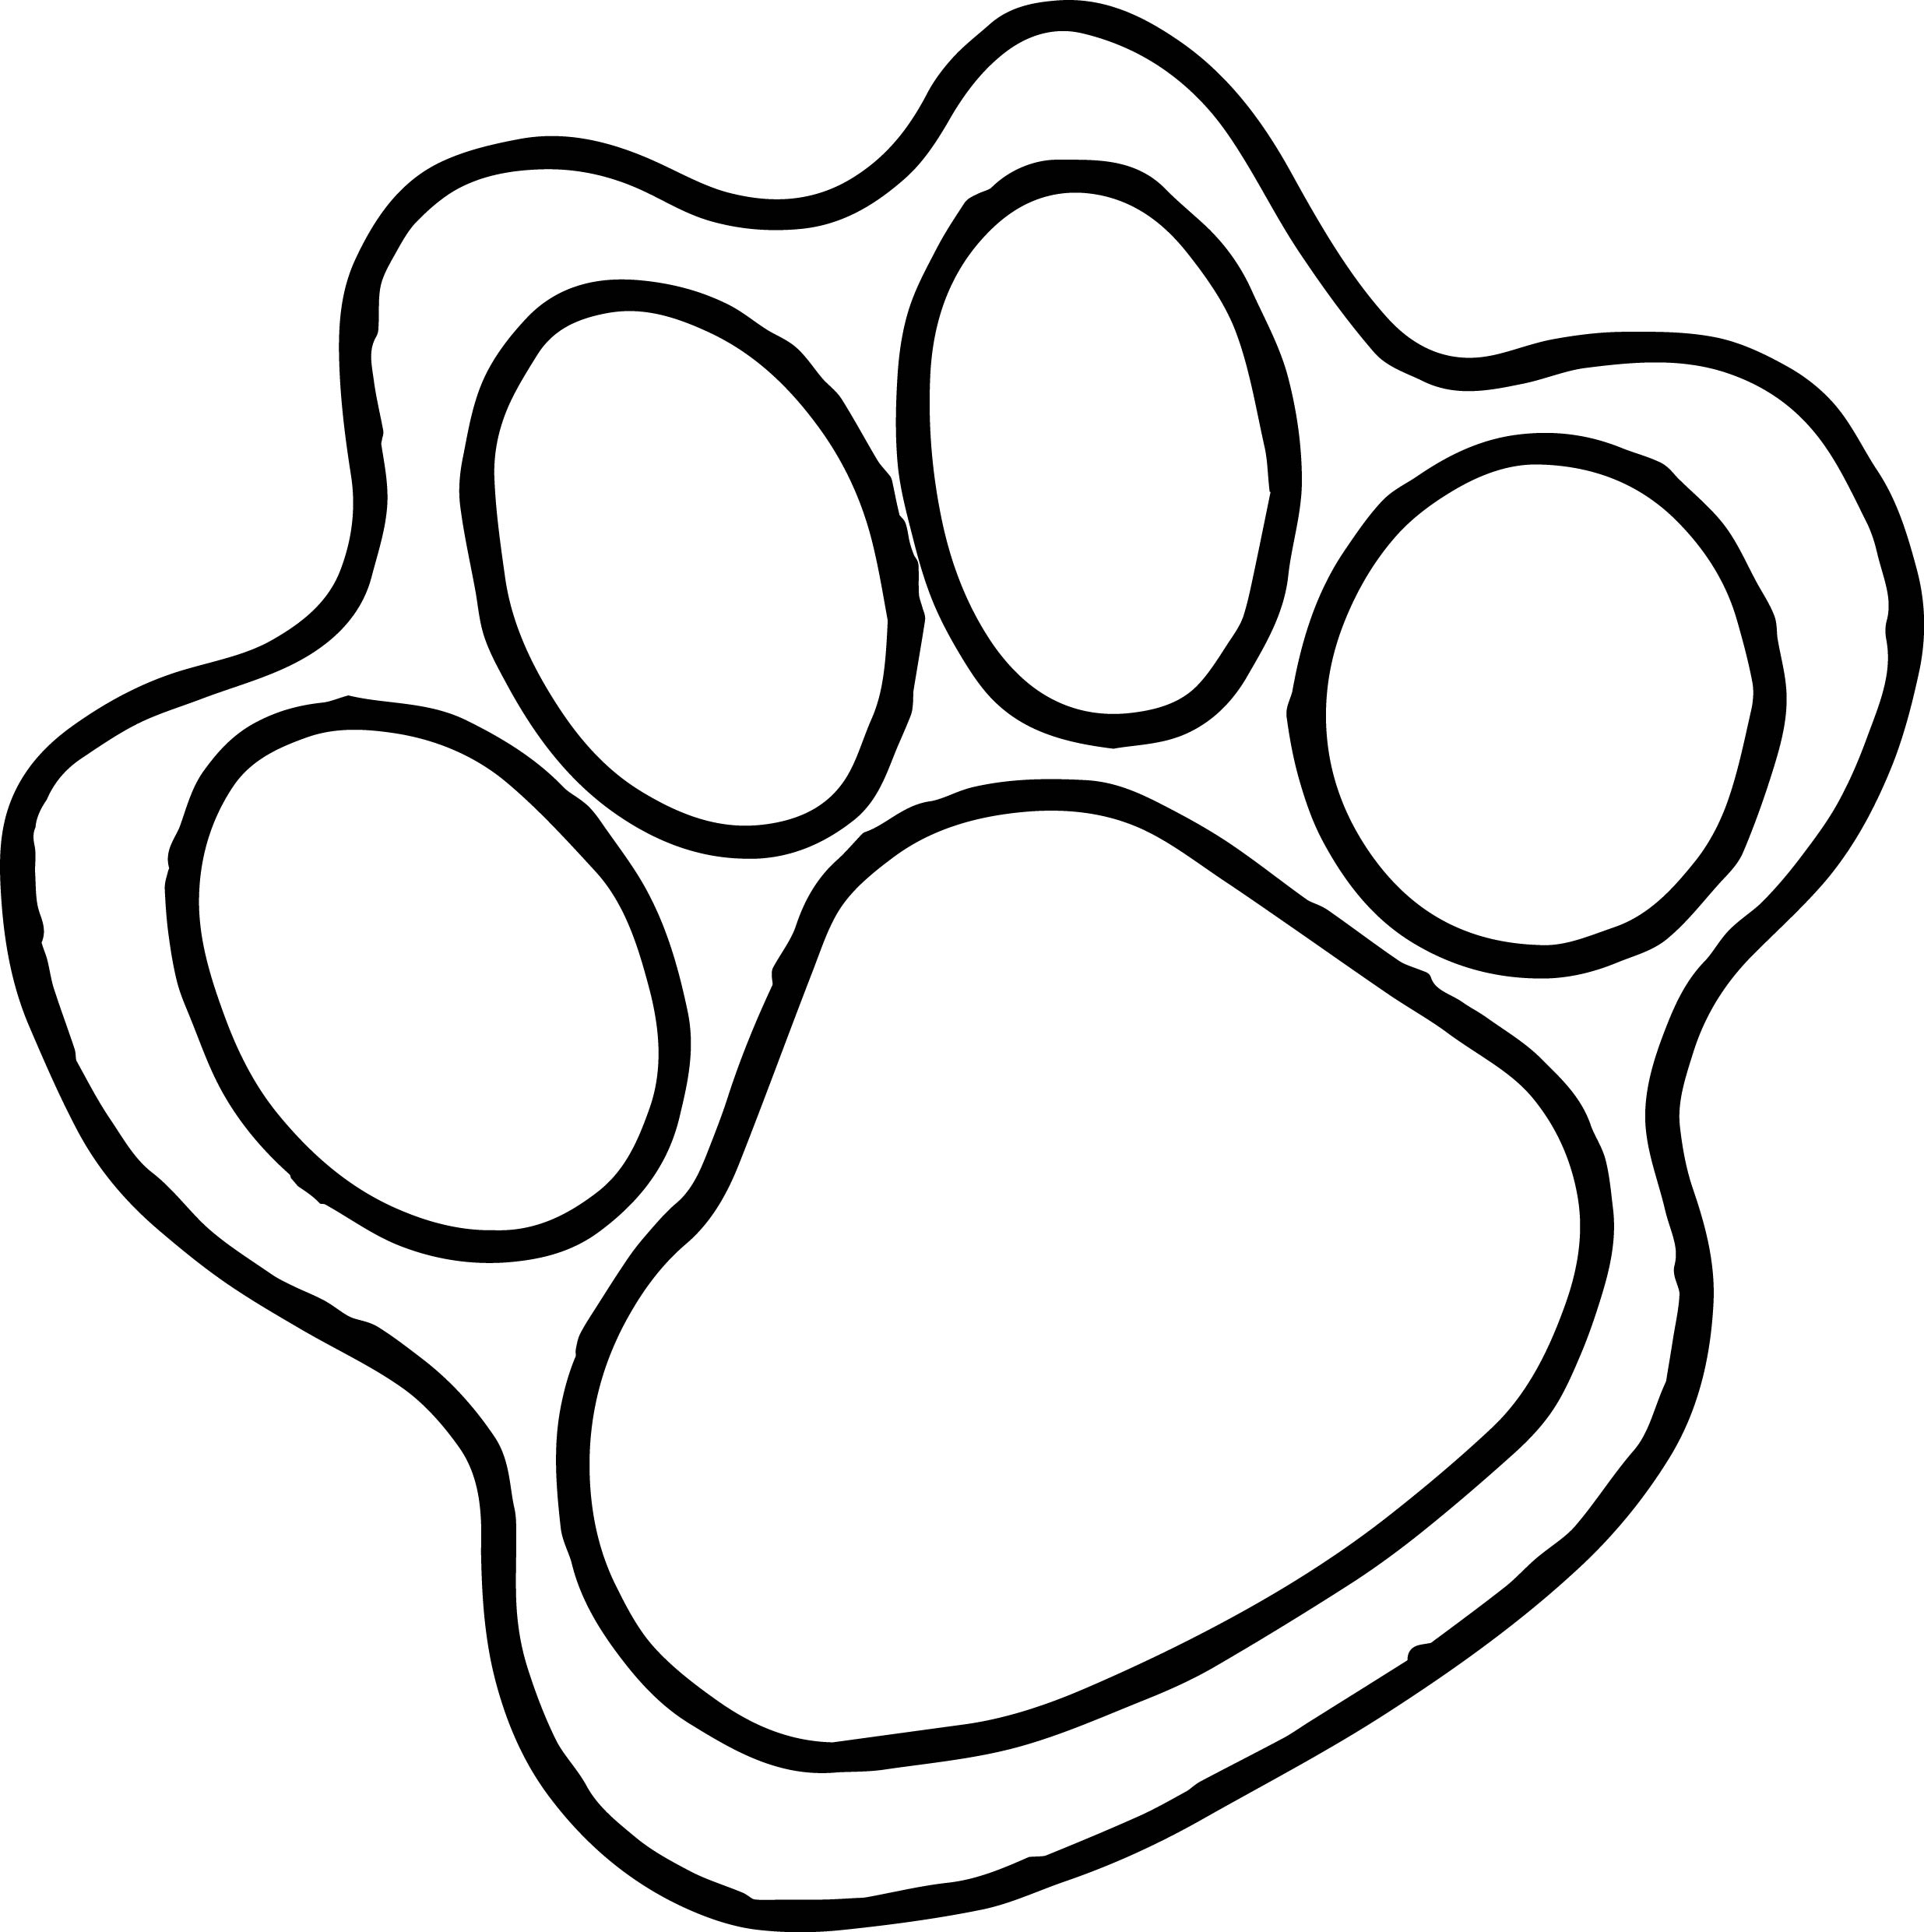 Tiger feet clipart free download Foot Coloring Page Clipart | Free download best Foot ... free download